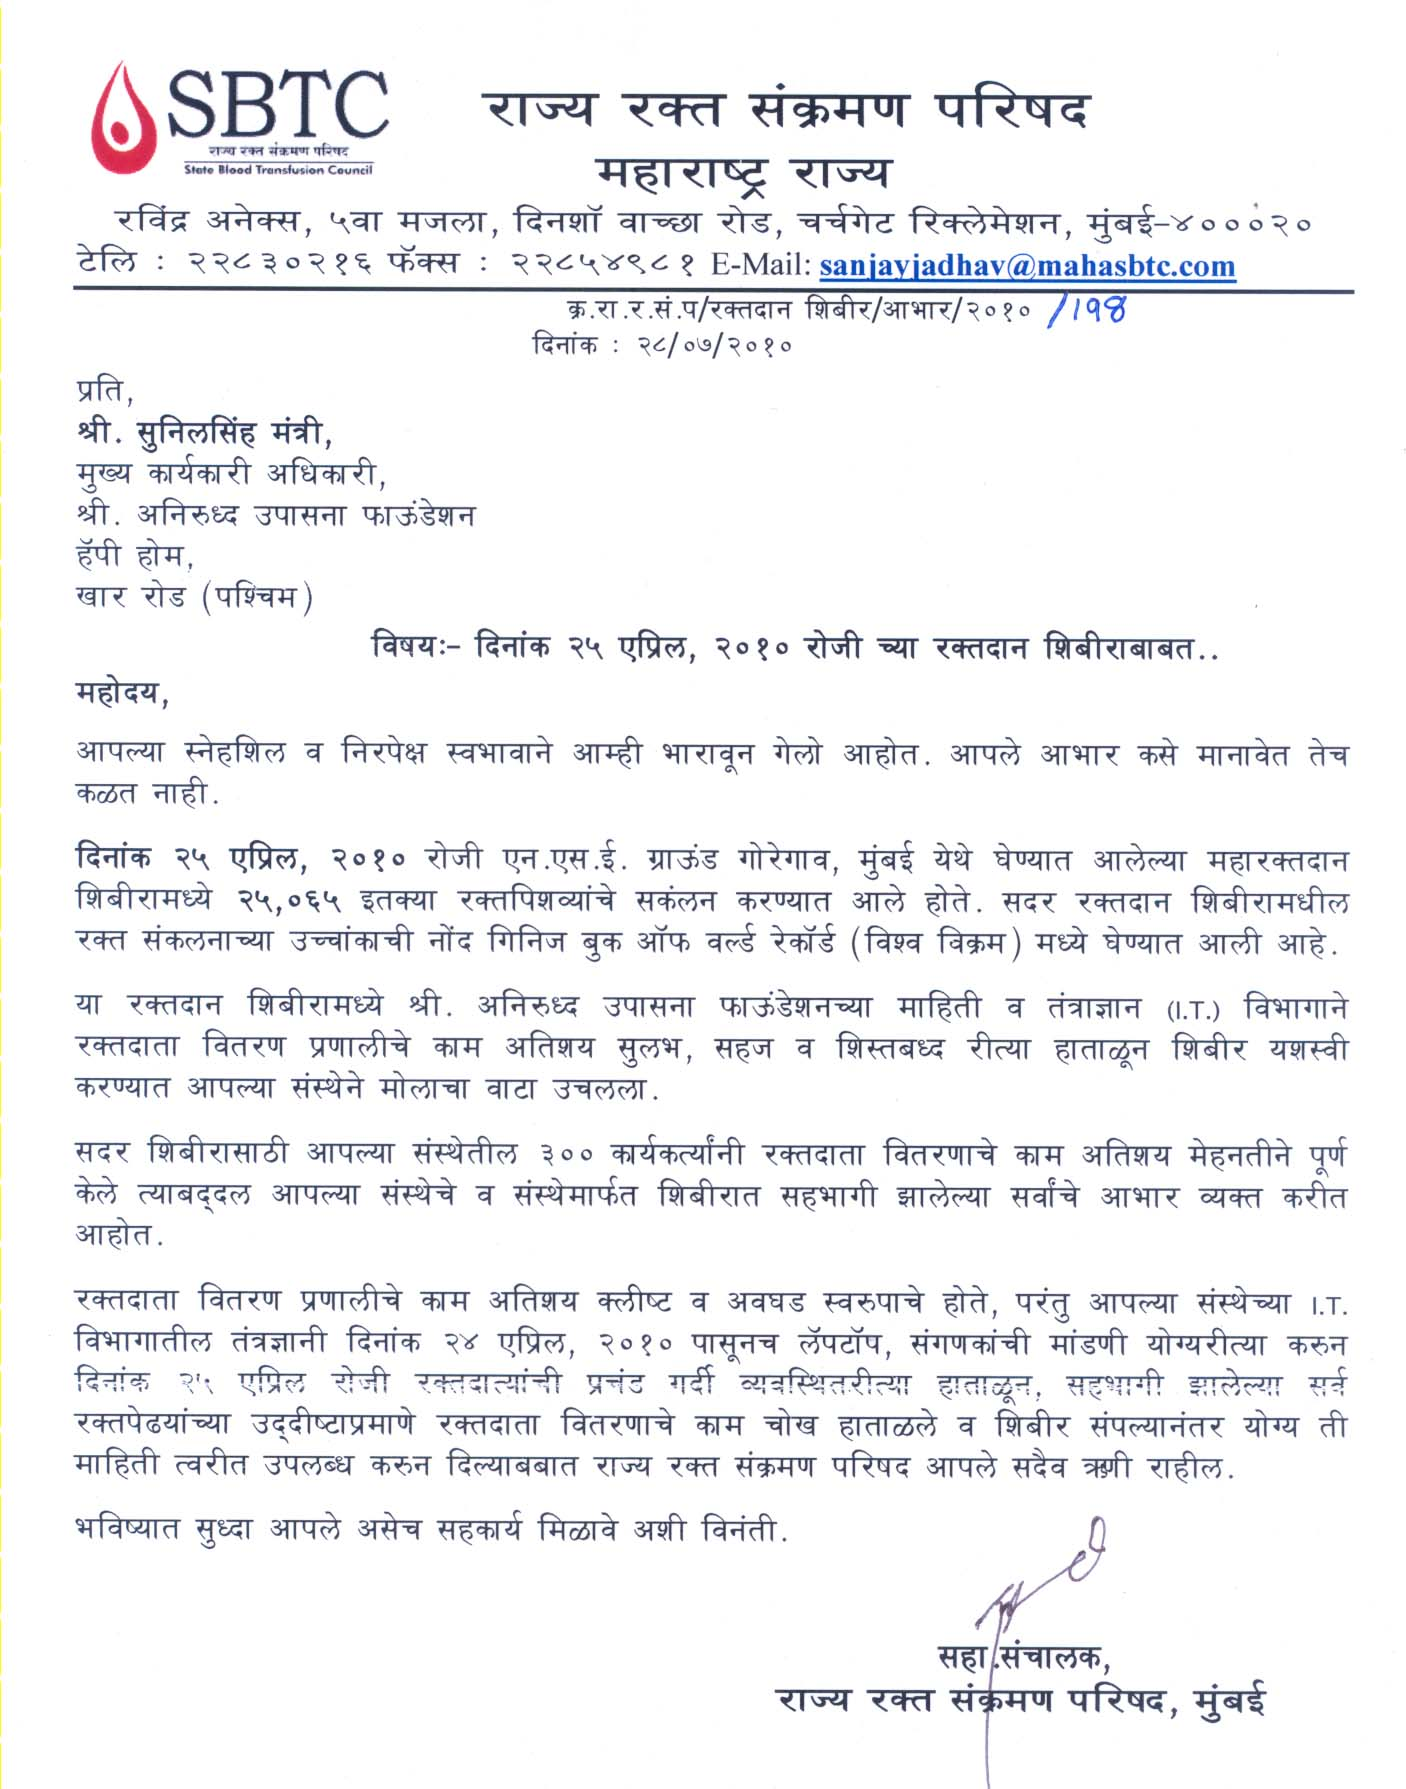 Appreciation letter blood donation camps shree aniruddha upasana appreciation letter from sbtc 2010 for aniruddhafoundation compassion social services stopboris Choice Image